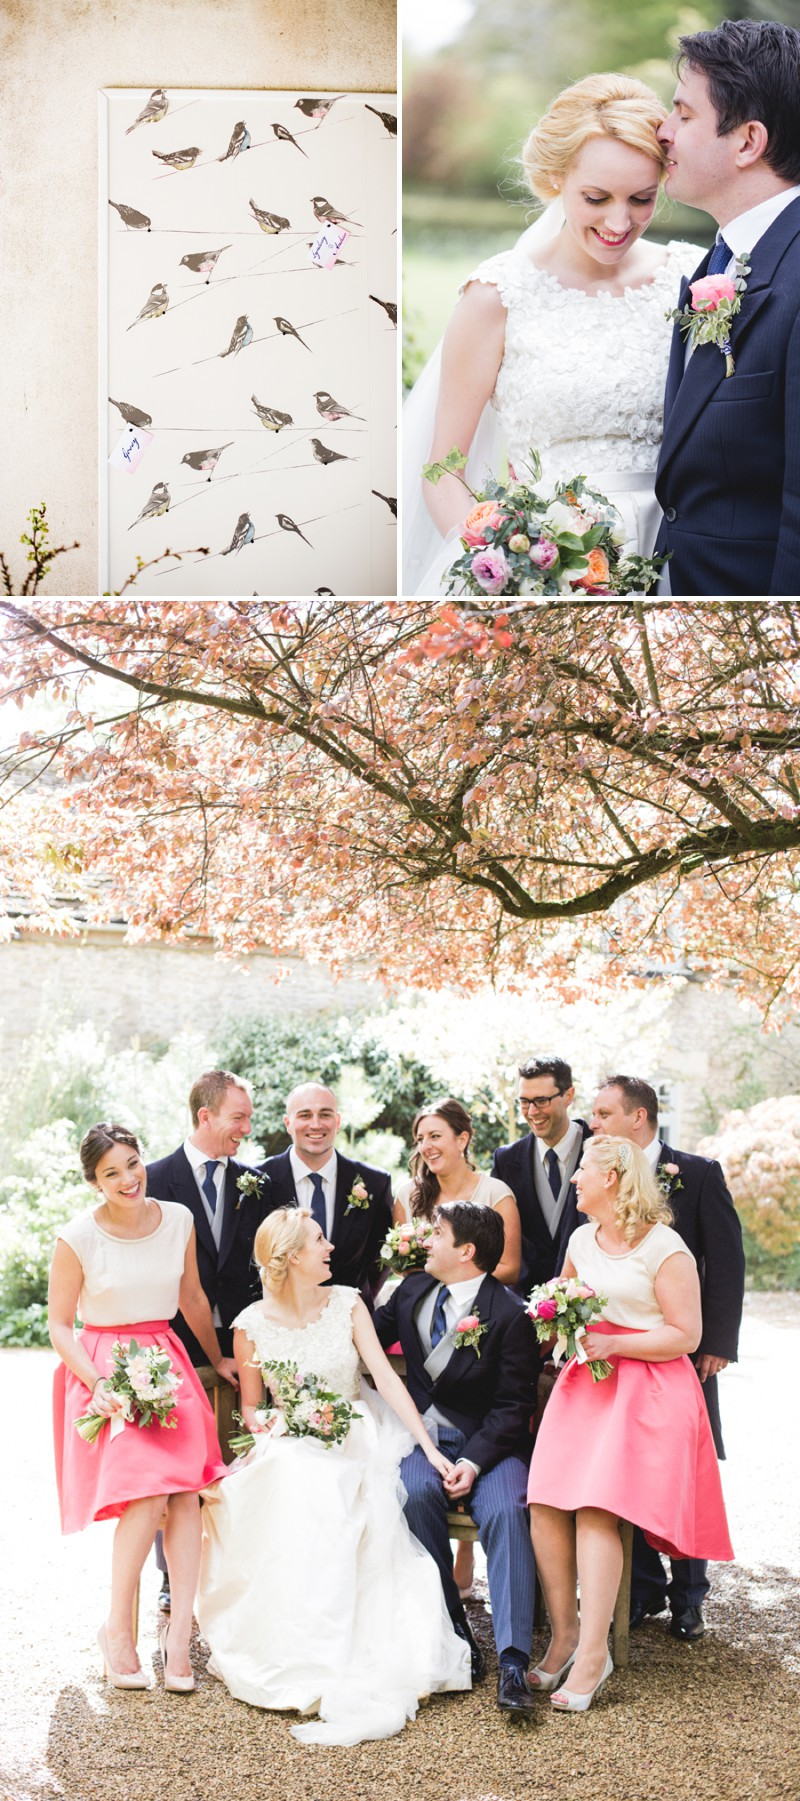 An Elegant English Wedding At The Matara Centre In The Cotswolds With A Bespoke Jenny Lessin Wedding Skirt and Top And Hot Pink Bridesmaid Dresses And A Gin And Tonic Cocktail Bar By M&J Photography._0010